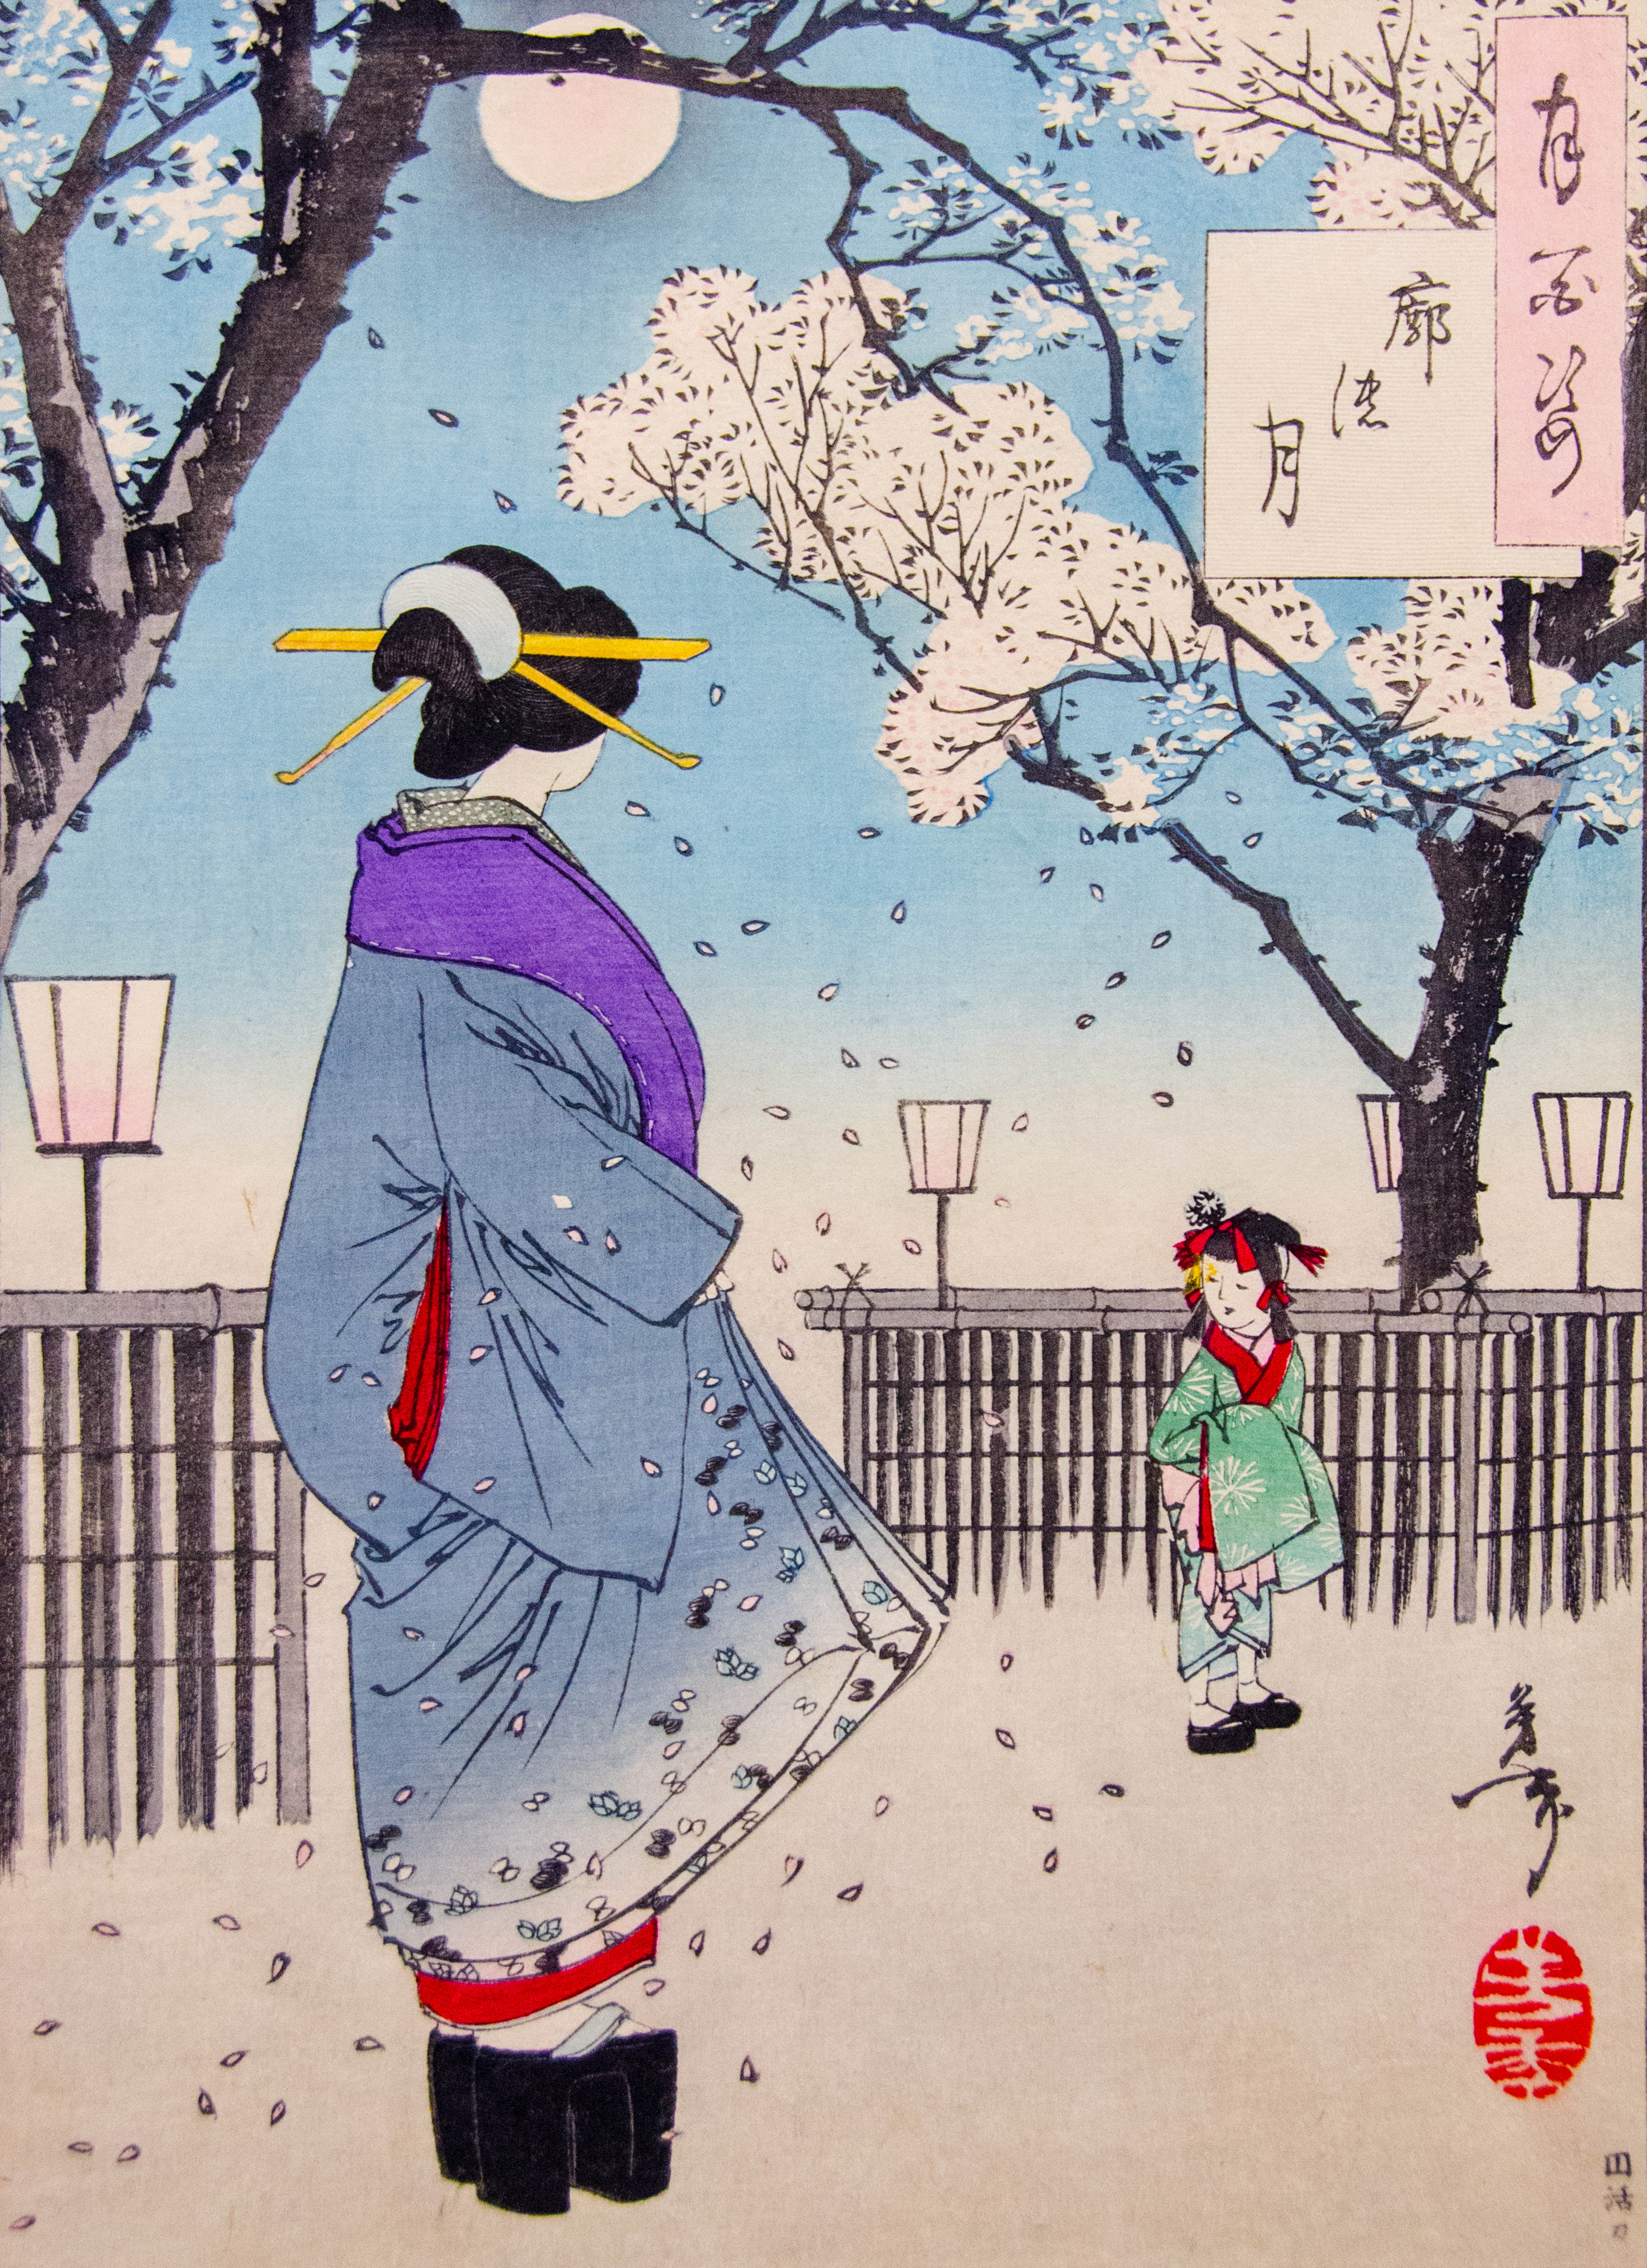 Japanese woodblock print by Tsukioka Yoshitoshi, Japanese, born 1839, died 1892, entitled 100 Aspects of the Moon: Moon of the Pleasure Quarters, printed in 1886, from the Dennis C. Hayes Collection